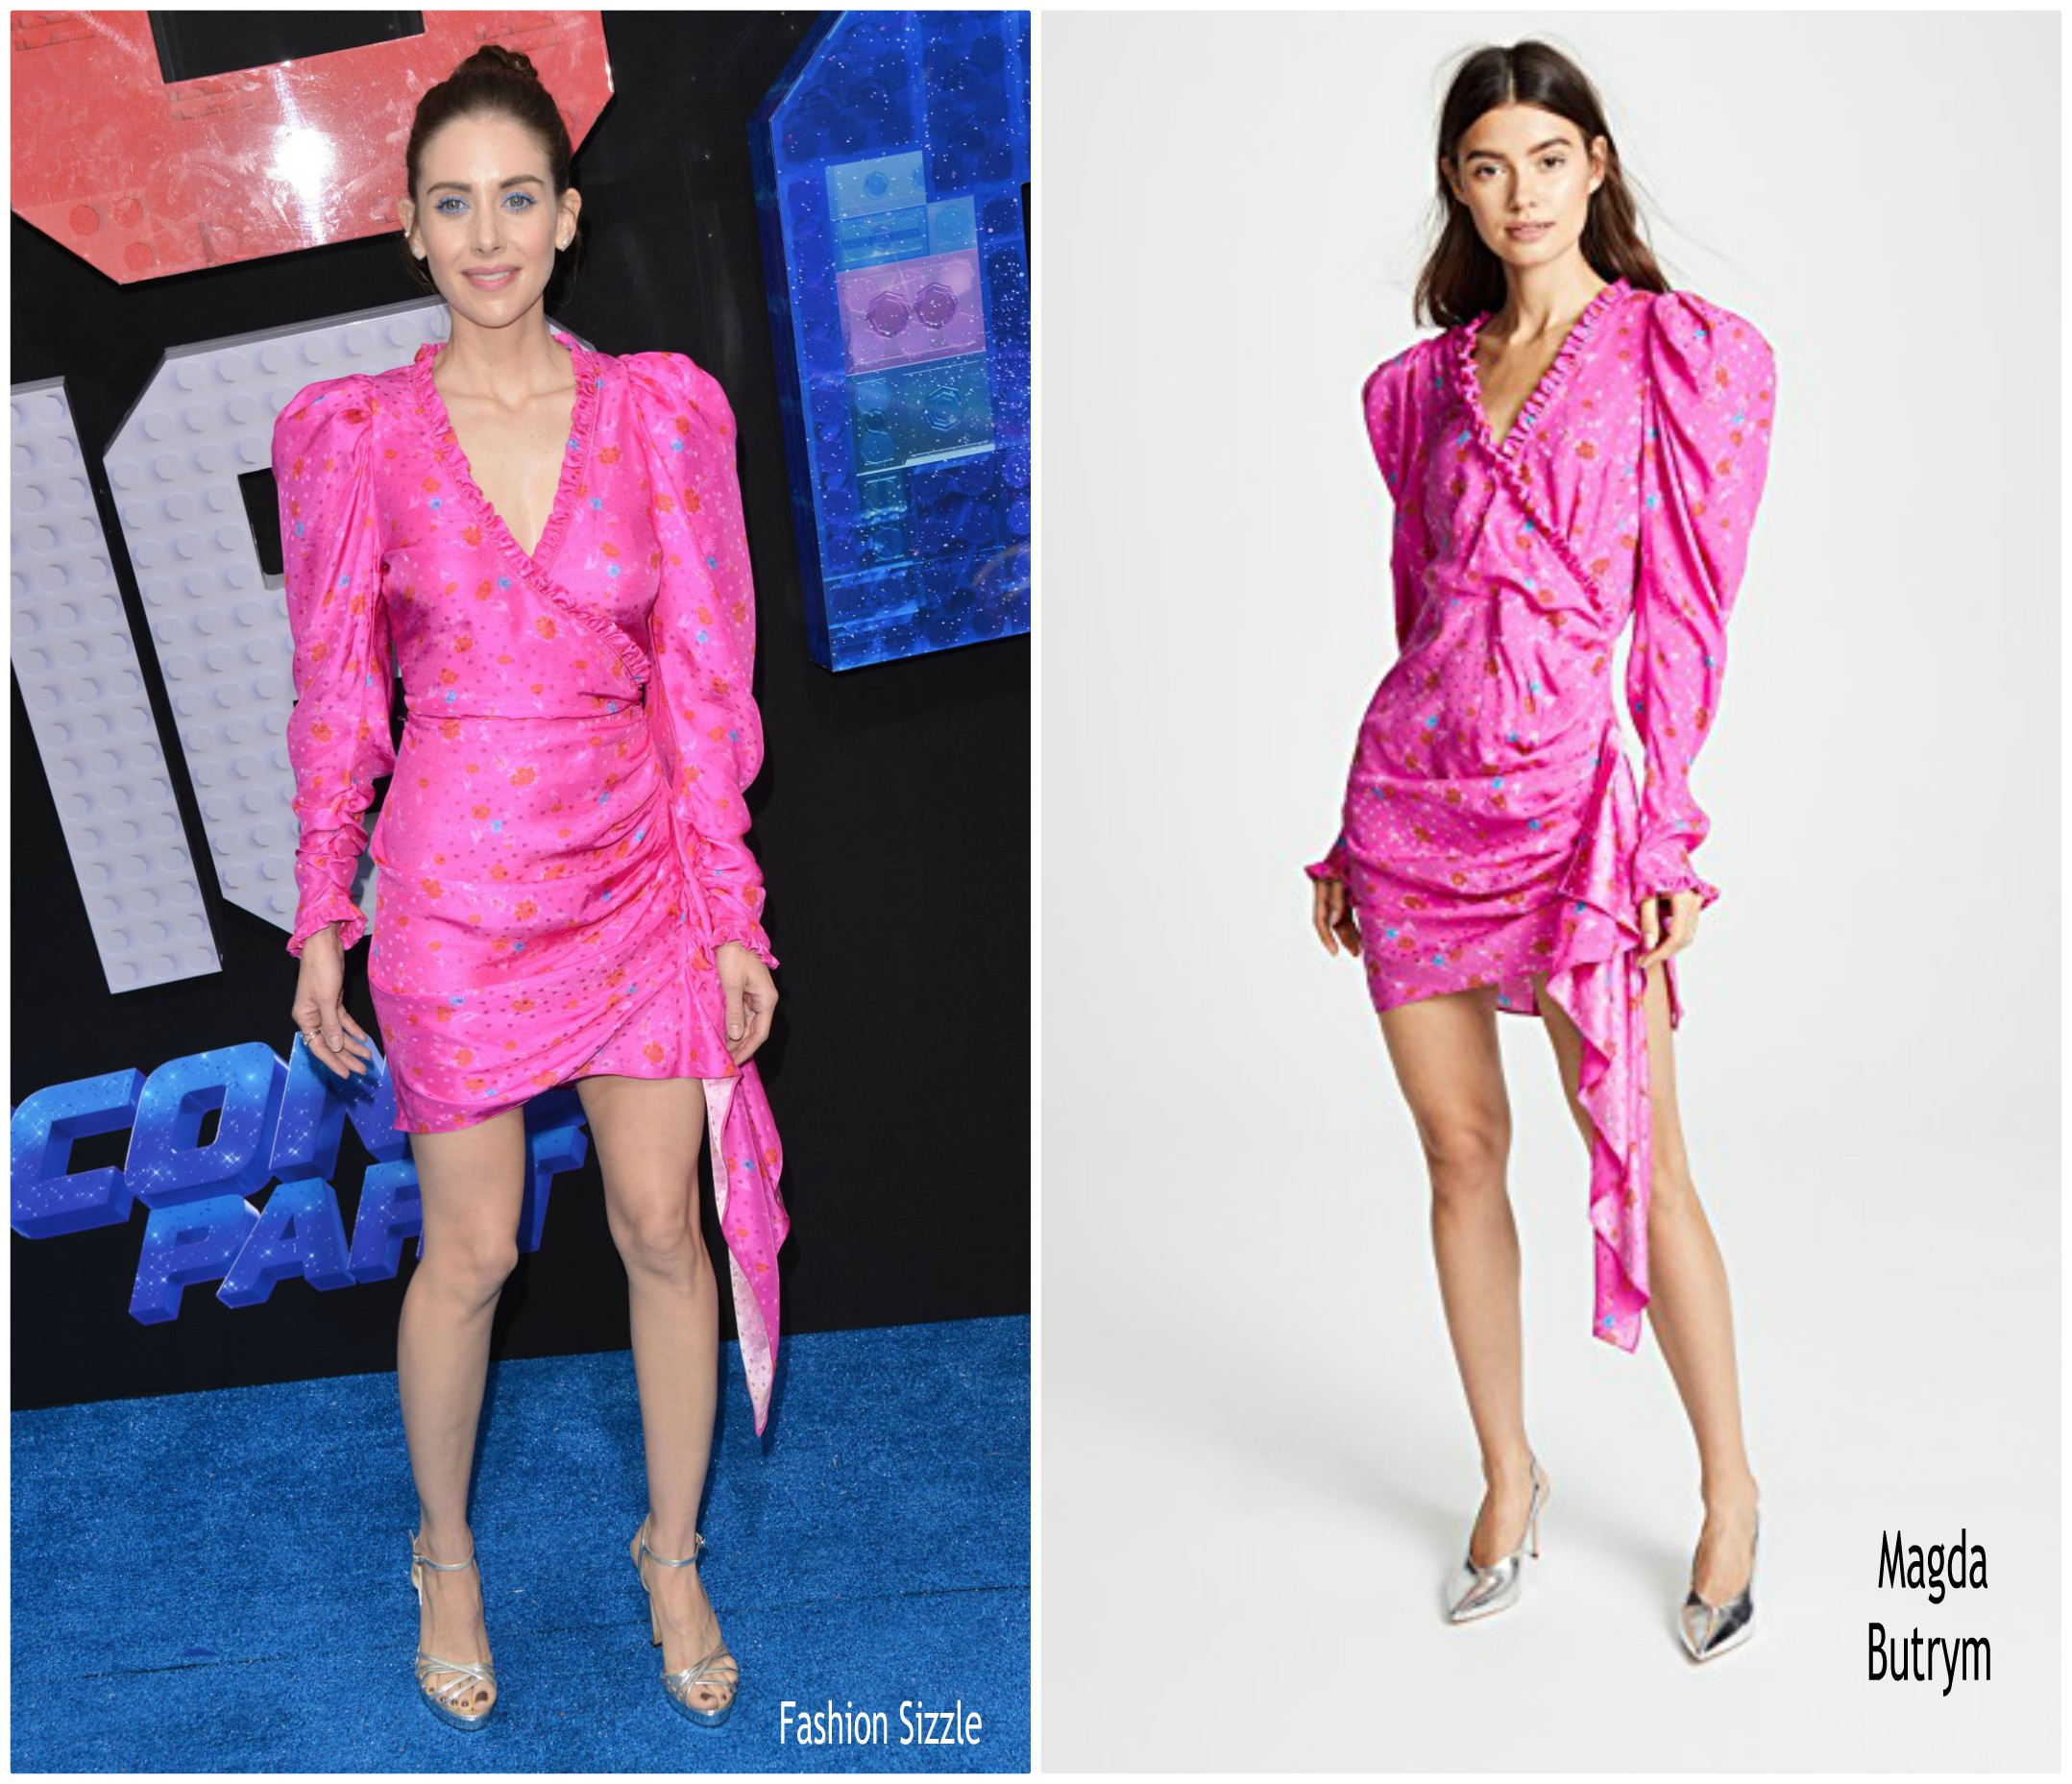 alison-brie-in-magda-butrym-the-lego-movie-2-the-second-part-la-premiere